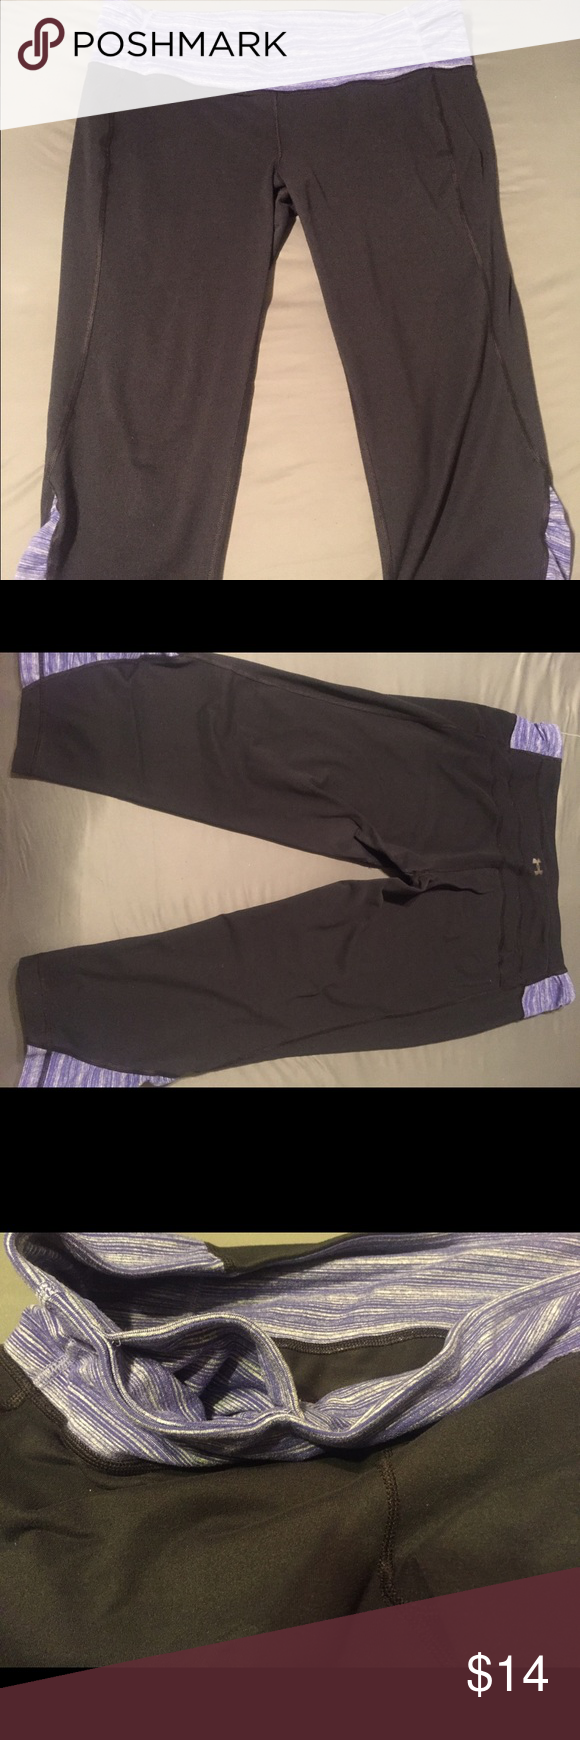 Under Armour Workout Leggings Under Armour workout leggings, thicker fabric- not see through when stretching! Waistband hidden pocket for keys/cards. Under Armour Pants Leggings